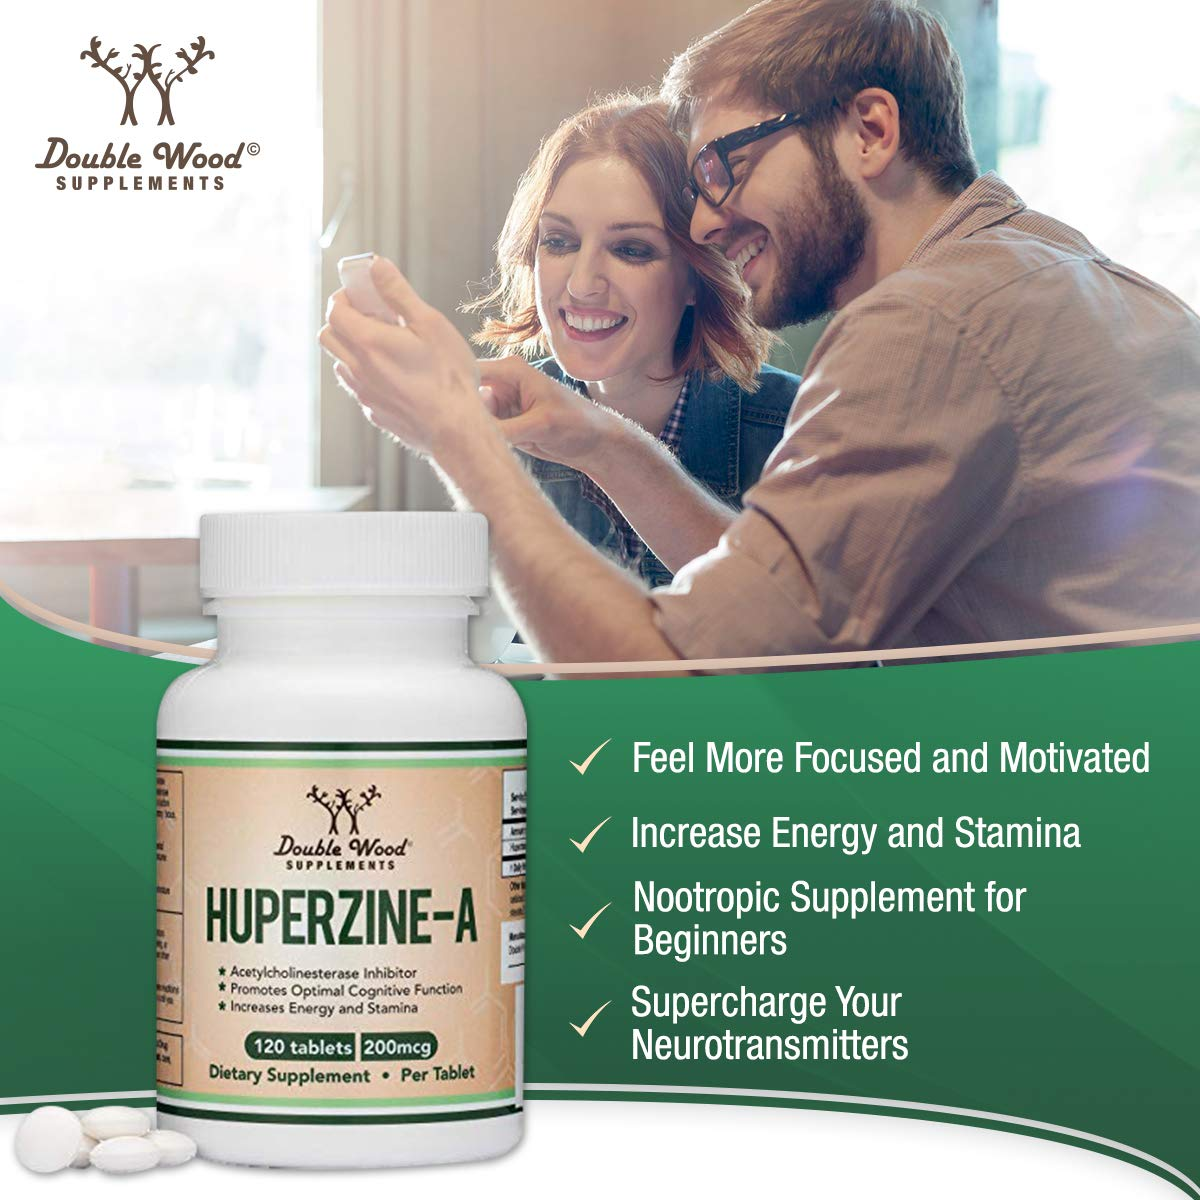 Huperzine A 200mcg (Third Party Tested) Made in The USA, 120 Tablets, Nootropics Brain Supplement to Boost Acetylcholine, Improve Memory and Focus by Double Wood Supplements by Double Wood Supplements (Image #5)